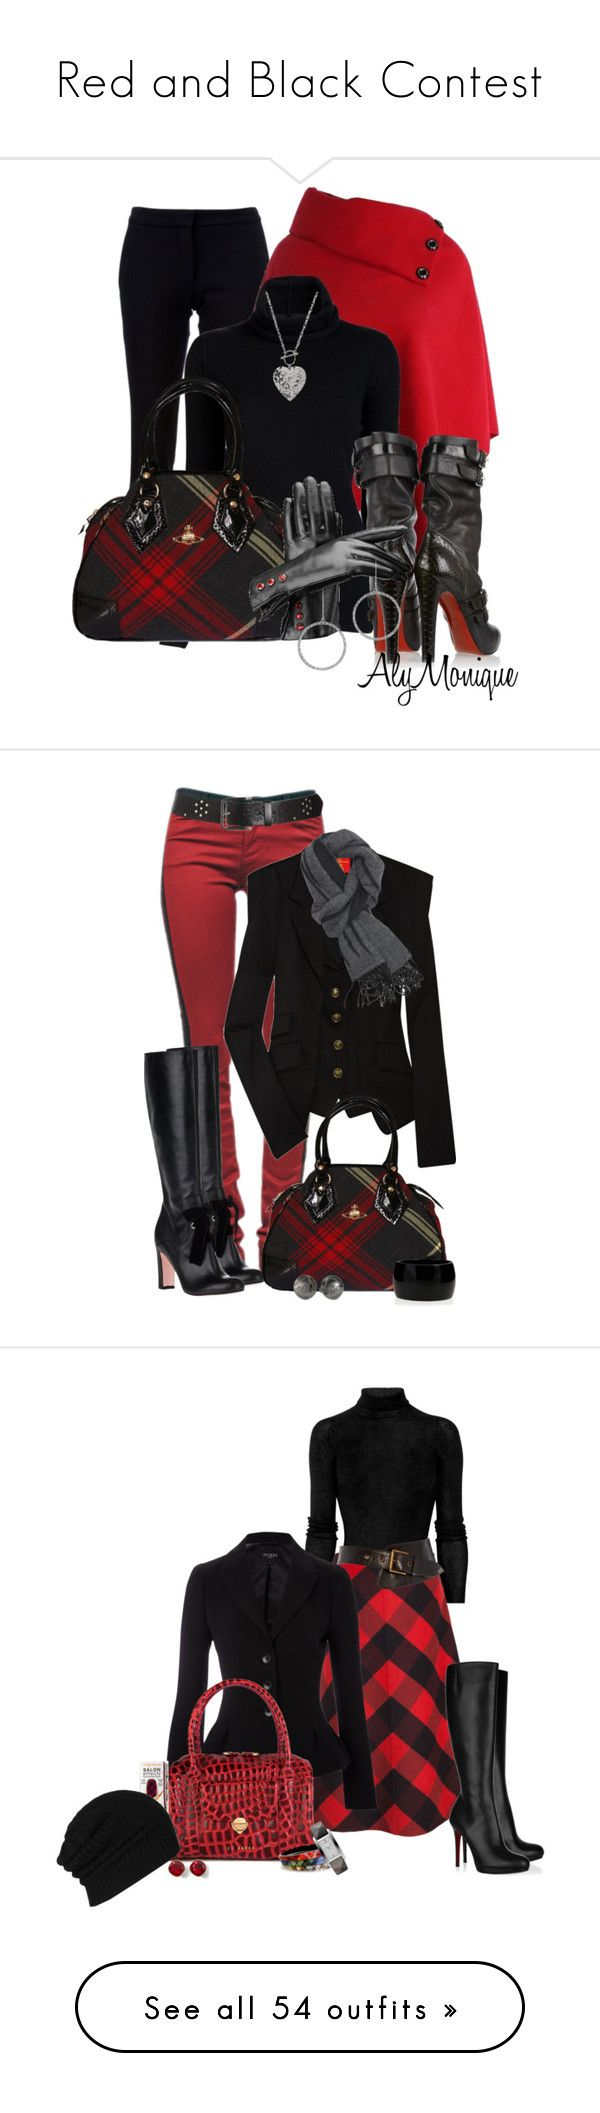 Red and Black Contest by jackie22 on Polyvore featuring polyvore fashion style STELLA McCARTNEY Inhabit 1928 Christian Louboutin Vivienne Westwood Aspinal of London Reeds Jewelers clothing Current/Elliott Vivienne Westwood Red Label RED Valentino Kenneth Jay Lane Gucci Michael Kors Jocasi Hobbs Ted Baker Sally Hansen Alexis Bittar Burberry White House Black Market AllSaints Vivienne Westwood Anglomania White Stuff Emilio Pucci Parajumpers Blonde + Blonde Splendid The Cambridge Satchel…